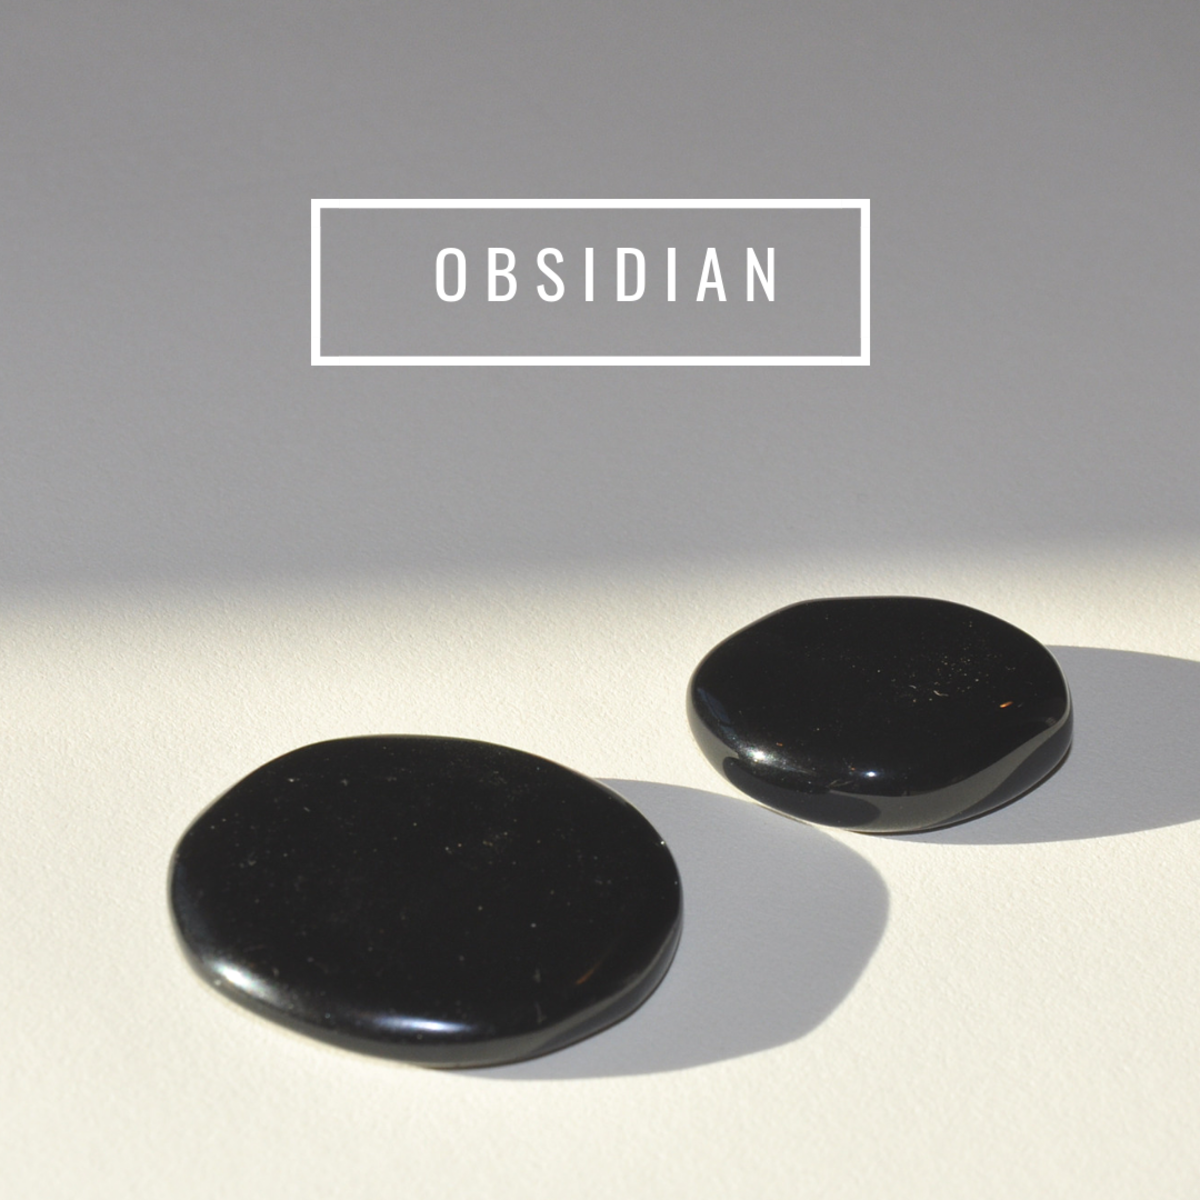 Obsidian offers strong grounding properties.